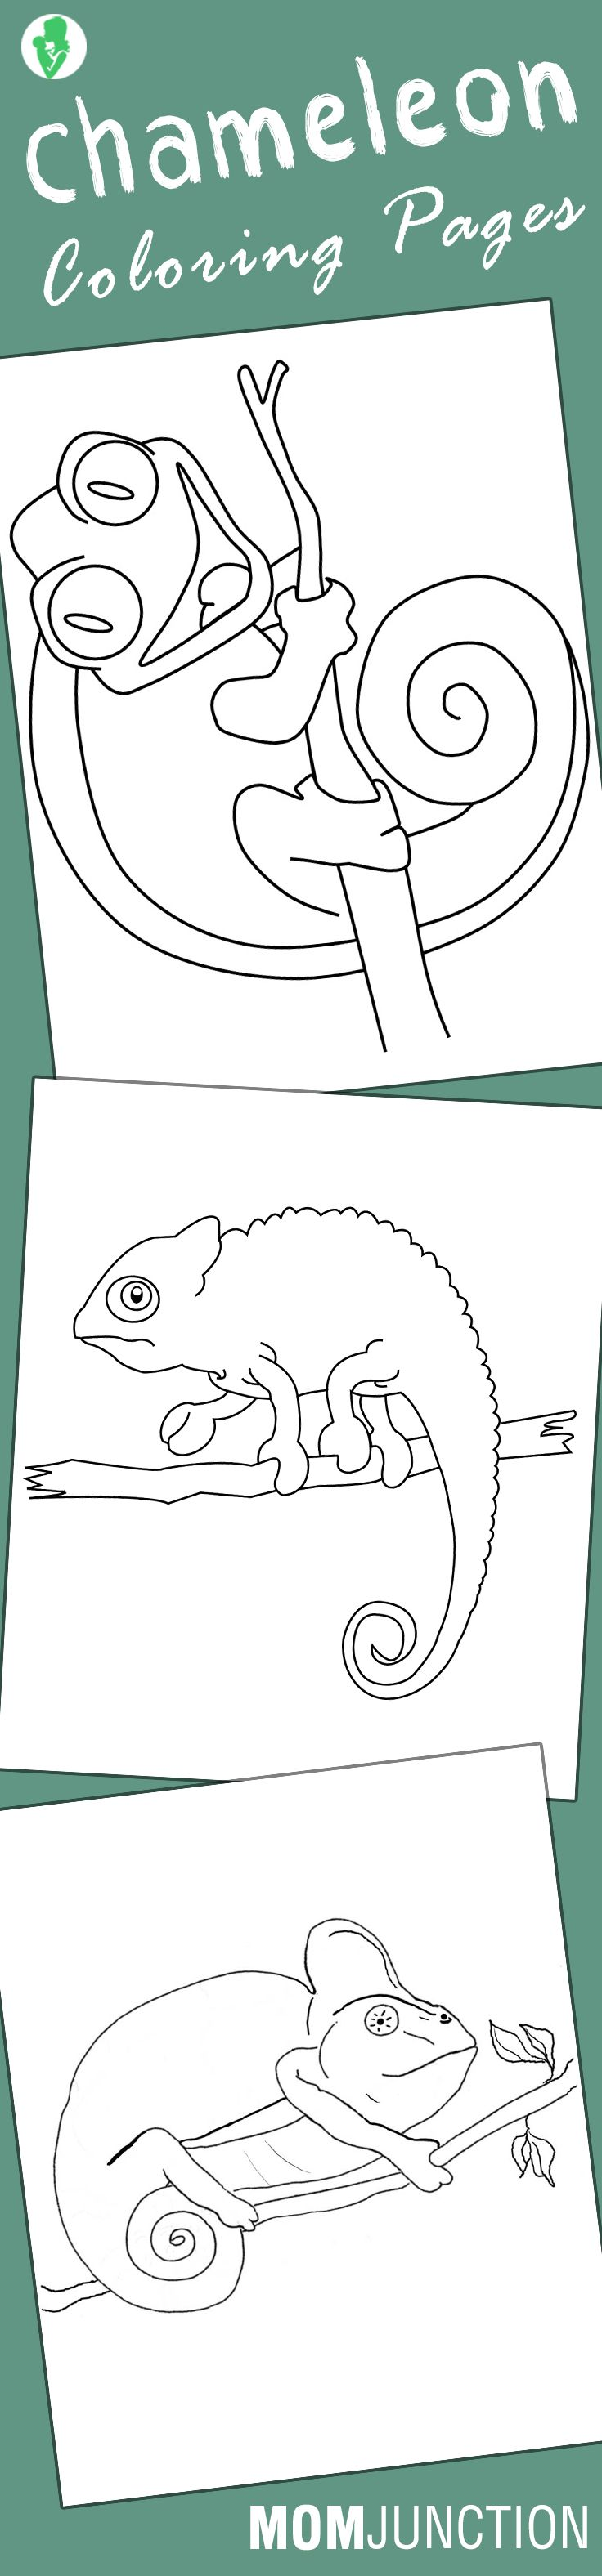 10 Best Chameleon Coloring Pages For Your Toddler